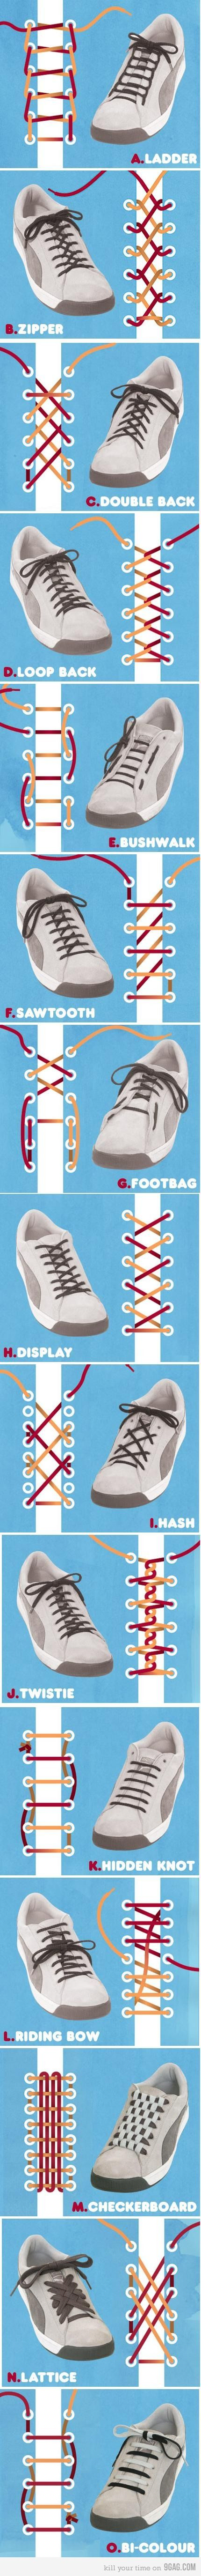 Who knew there were so many different ways to tie your shoes?